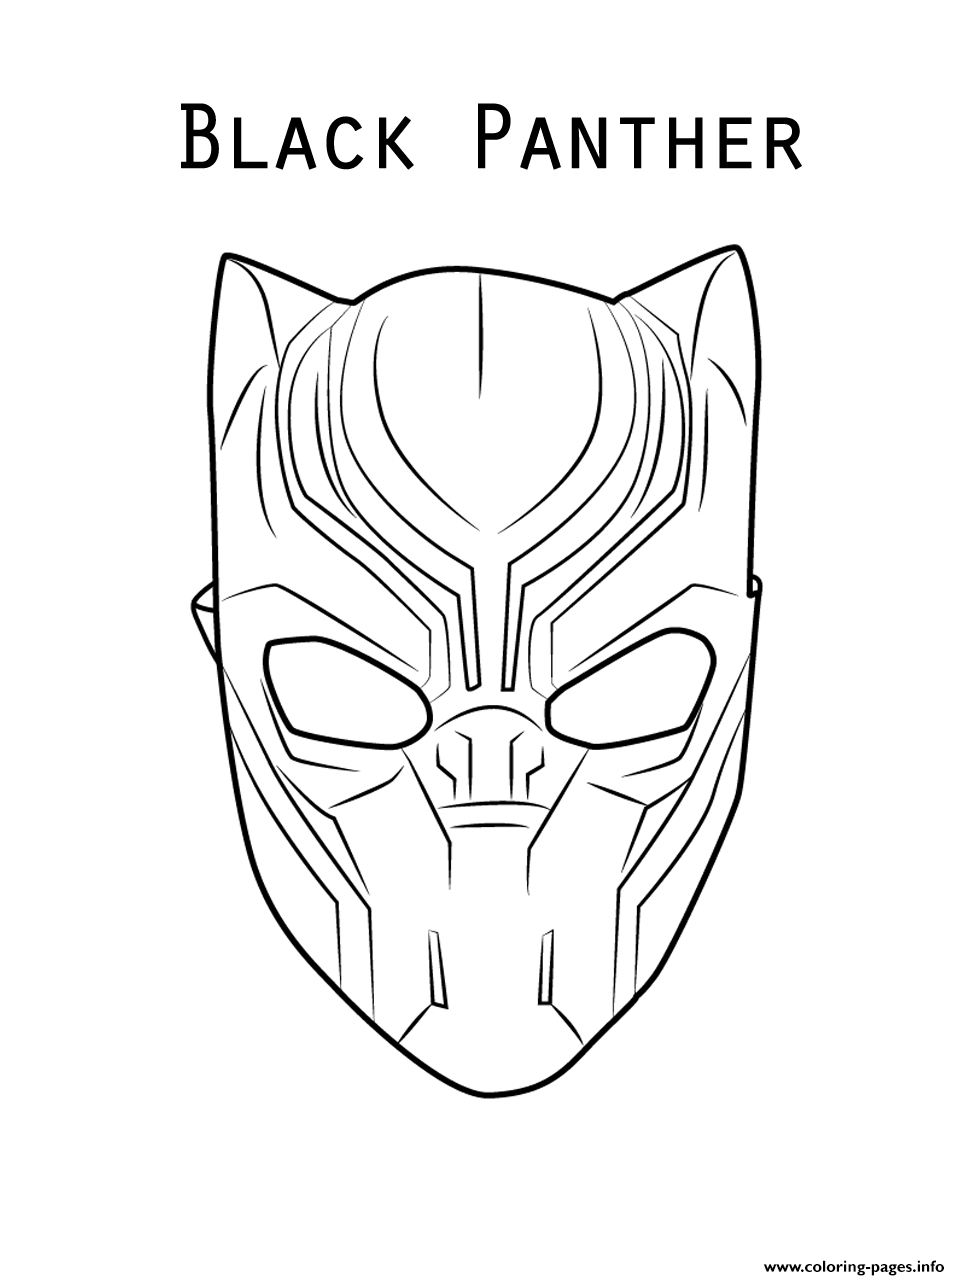 Lego Marvel Coloring Pages To Download And Print For Free: Marvel Movie Black Panther Mask Coloring Pages Printable